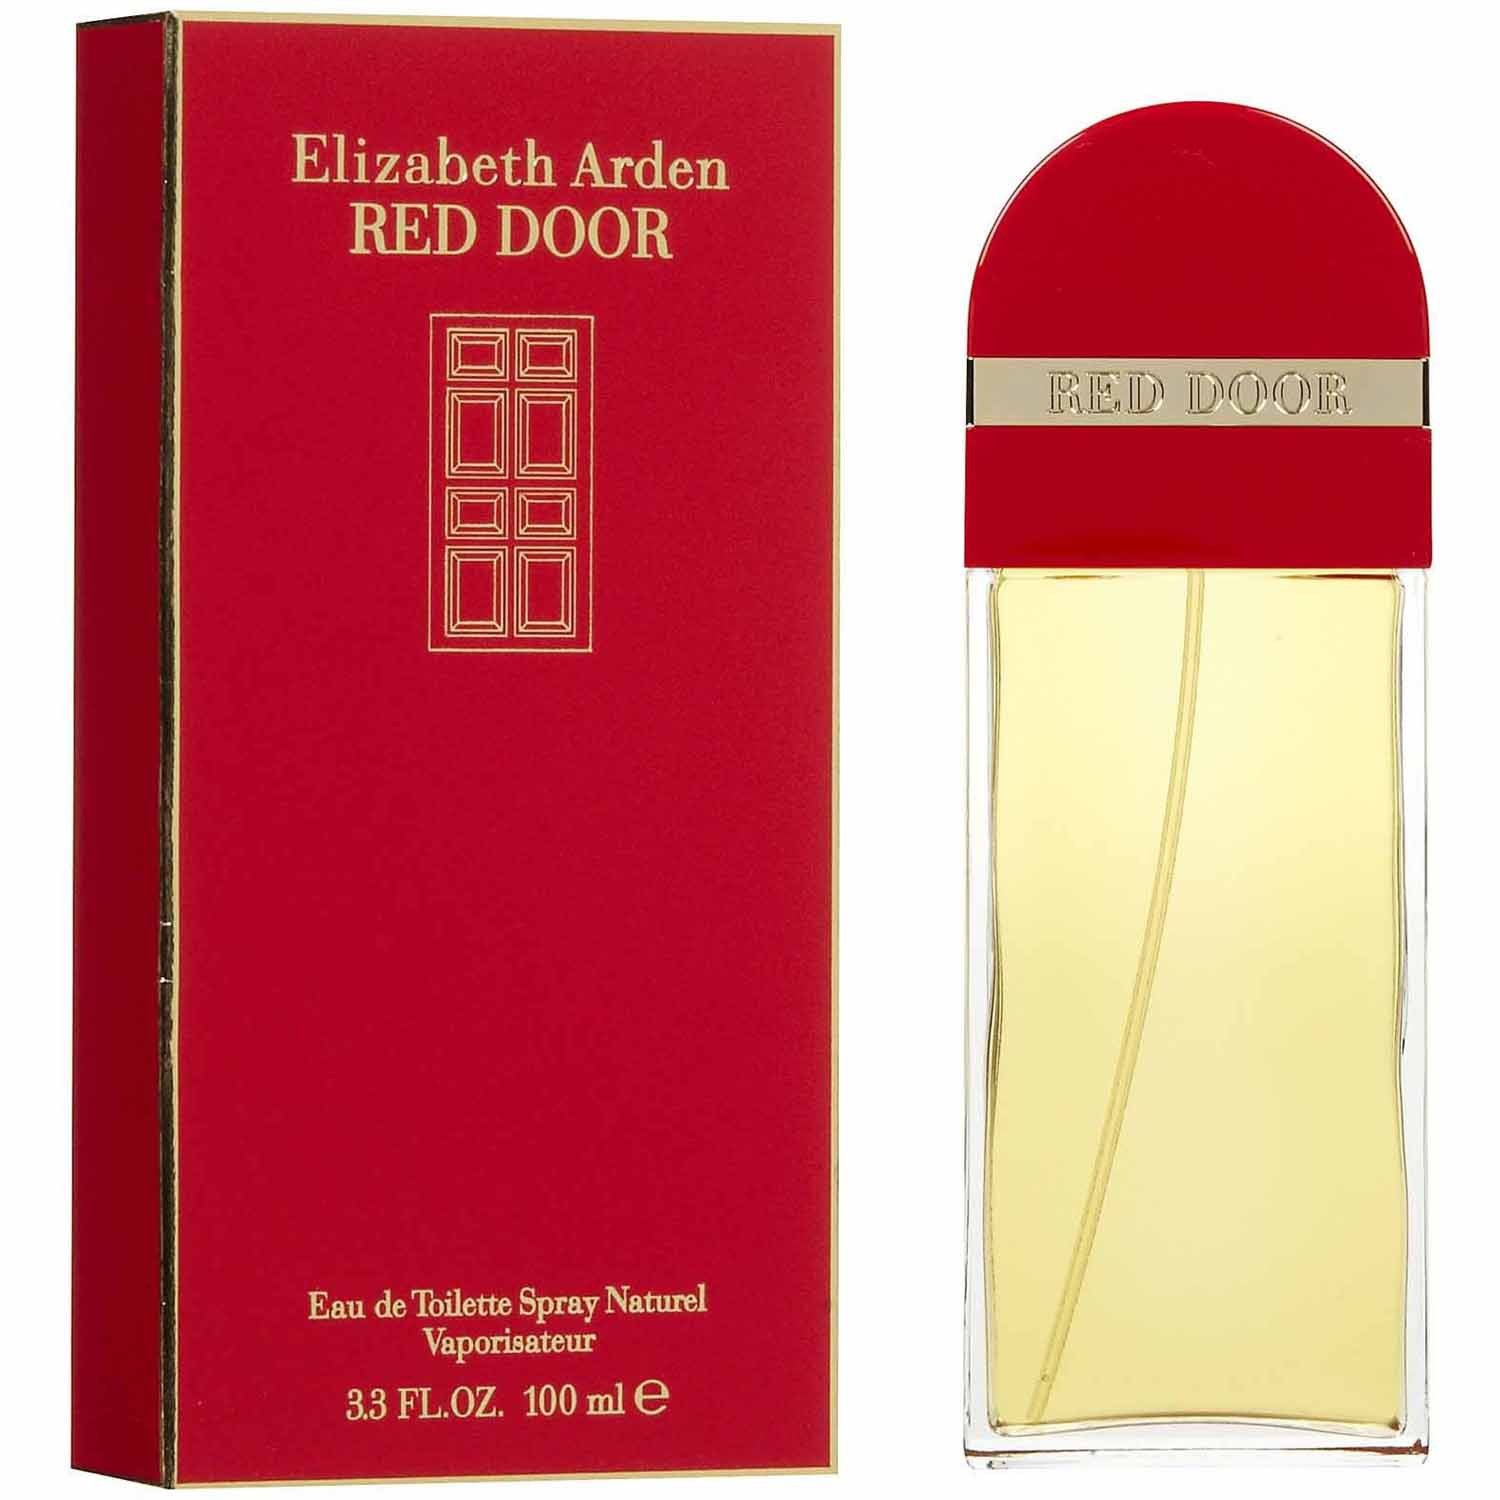 Elizabeth Arden Perfume Reviews